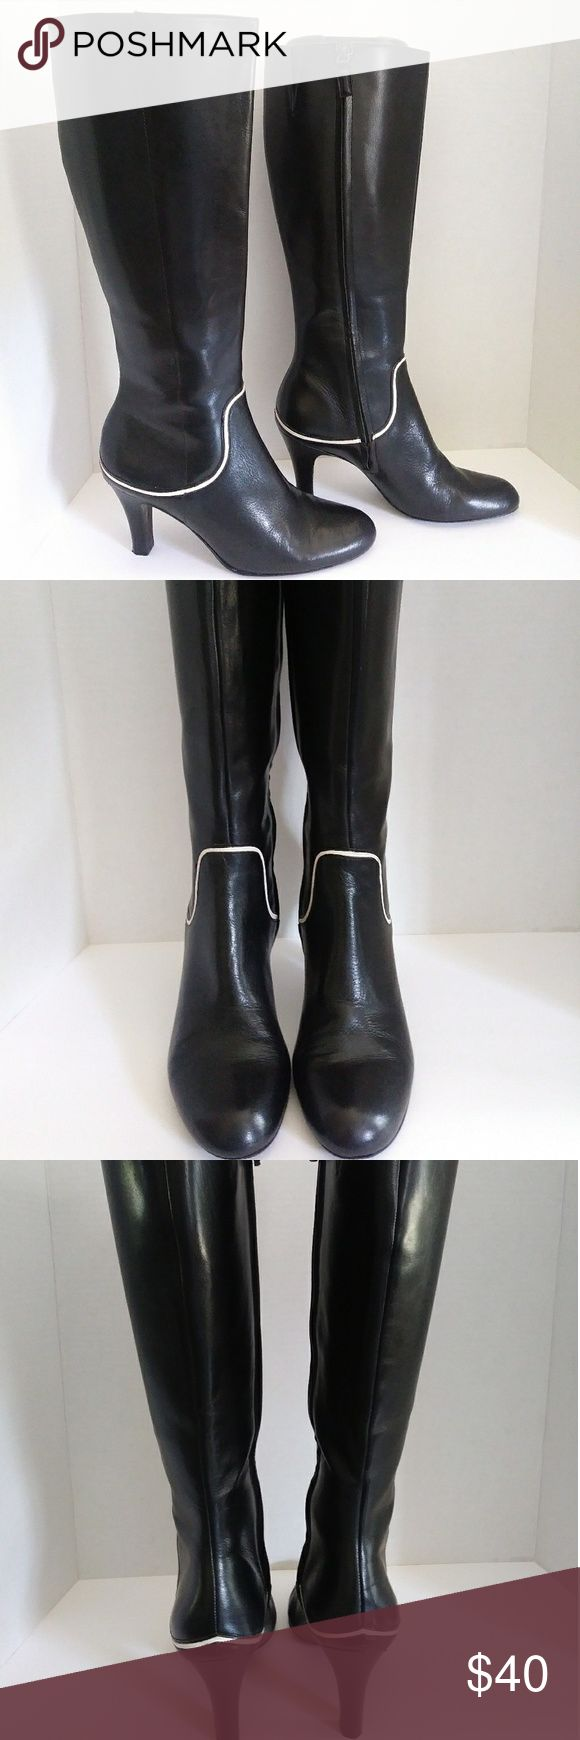 Antonio Melani black tall boots Nice soft leather tall boots with zip sides, white leather design decor in good clean condition ANTONIO MELANI Shoes Heeled Boots